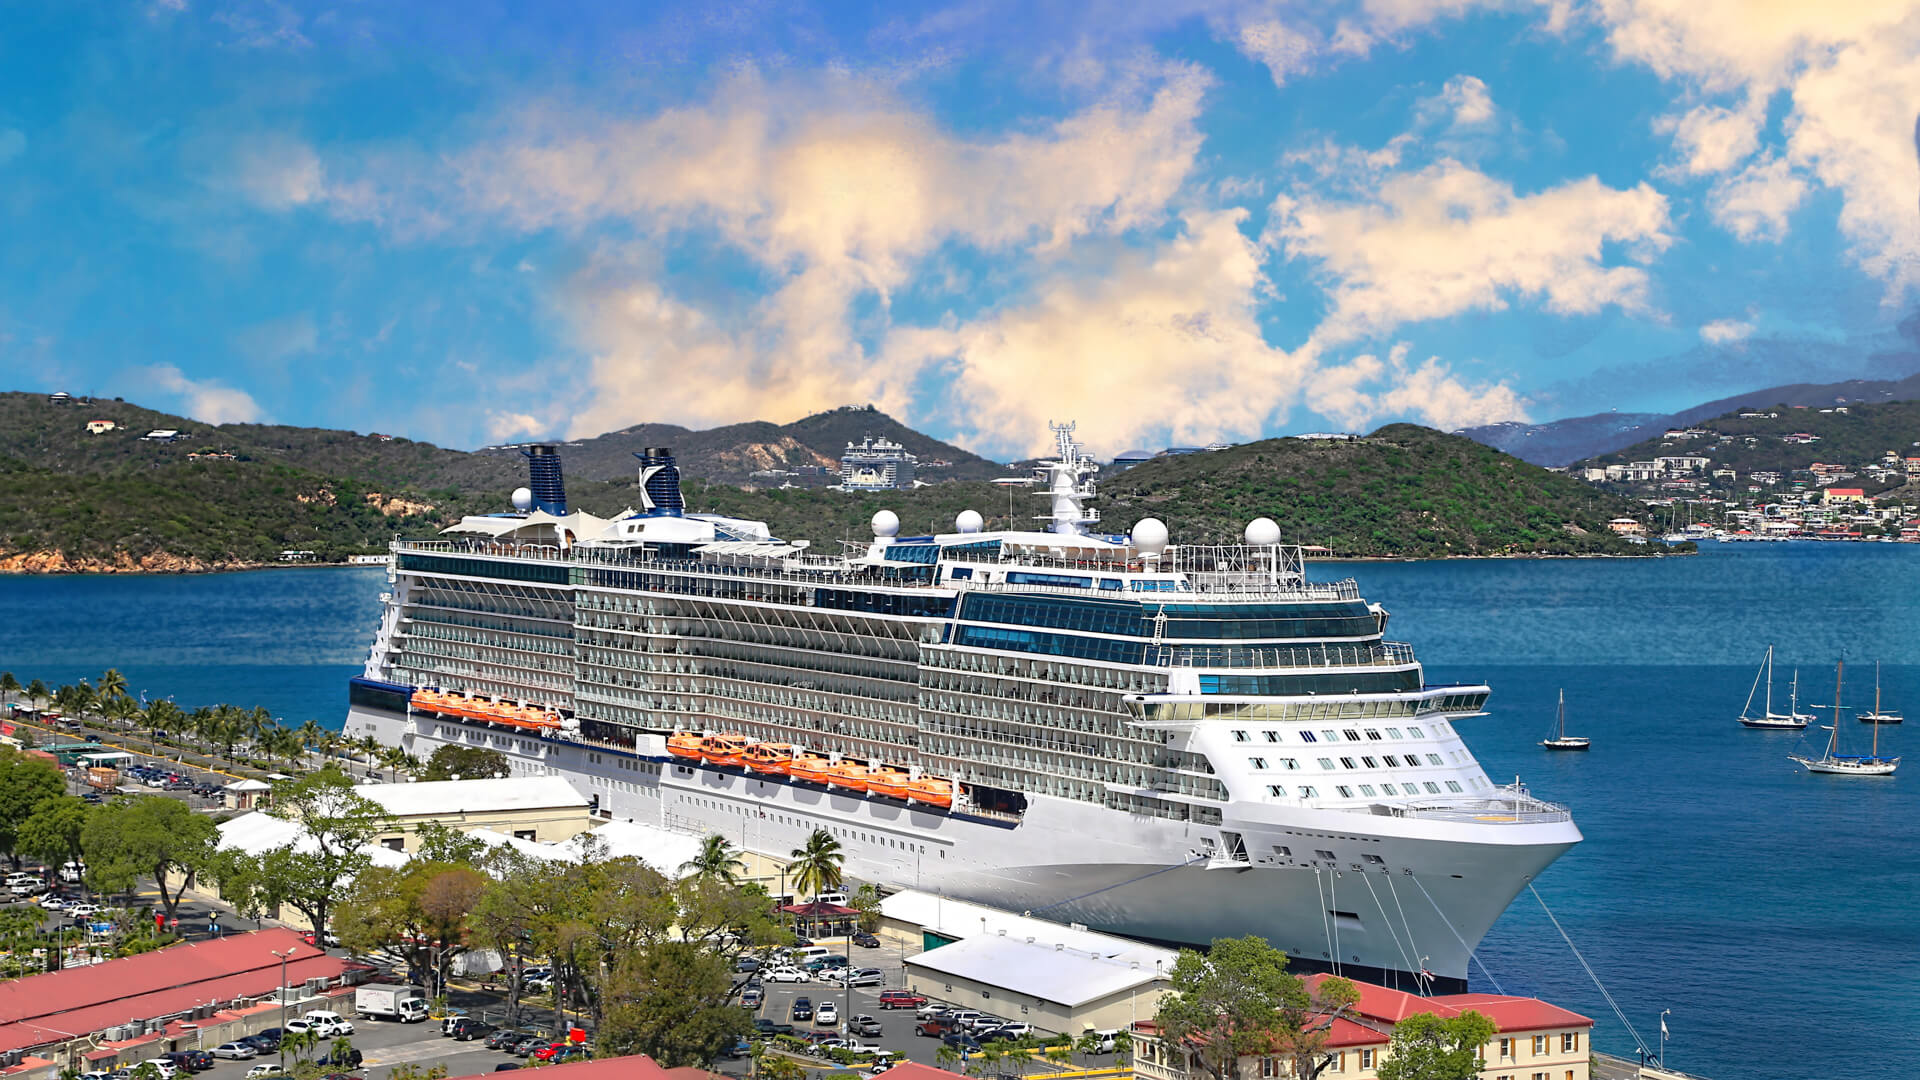 Cruise Lines Cancel Sailings Through End of Year … at Least